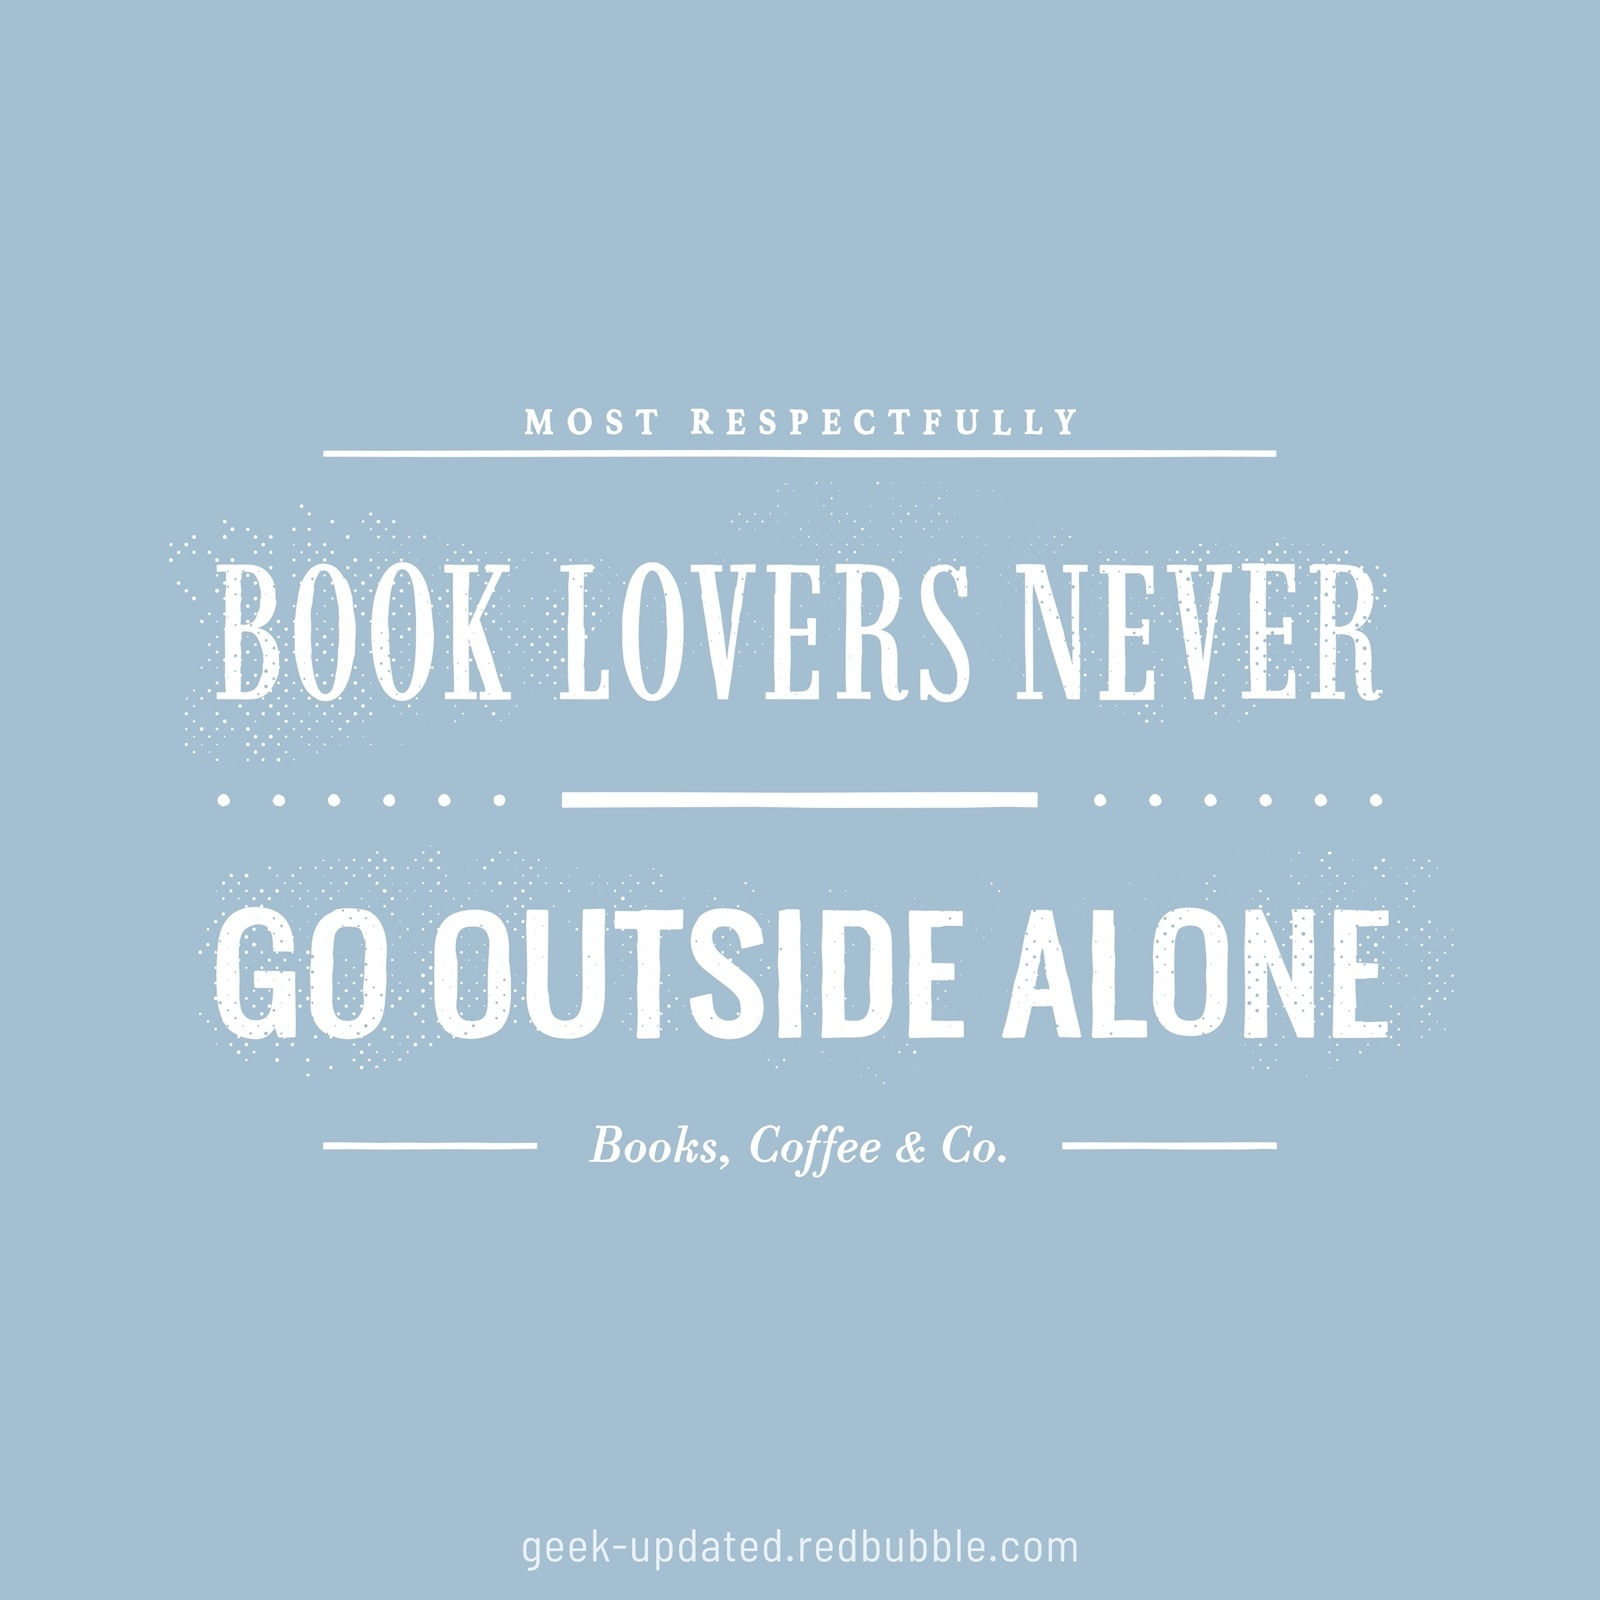 Book lovers never go outside alone - design by Piotr Kowalczyk